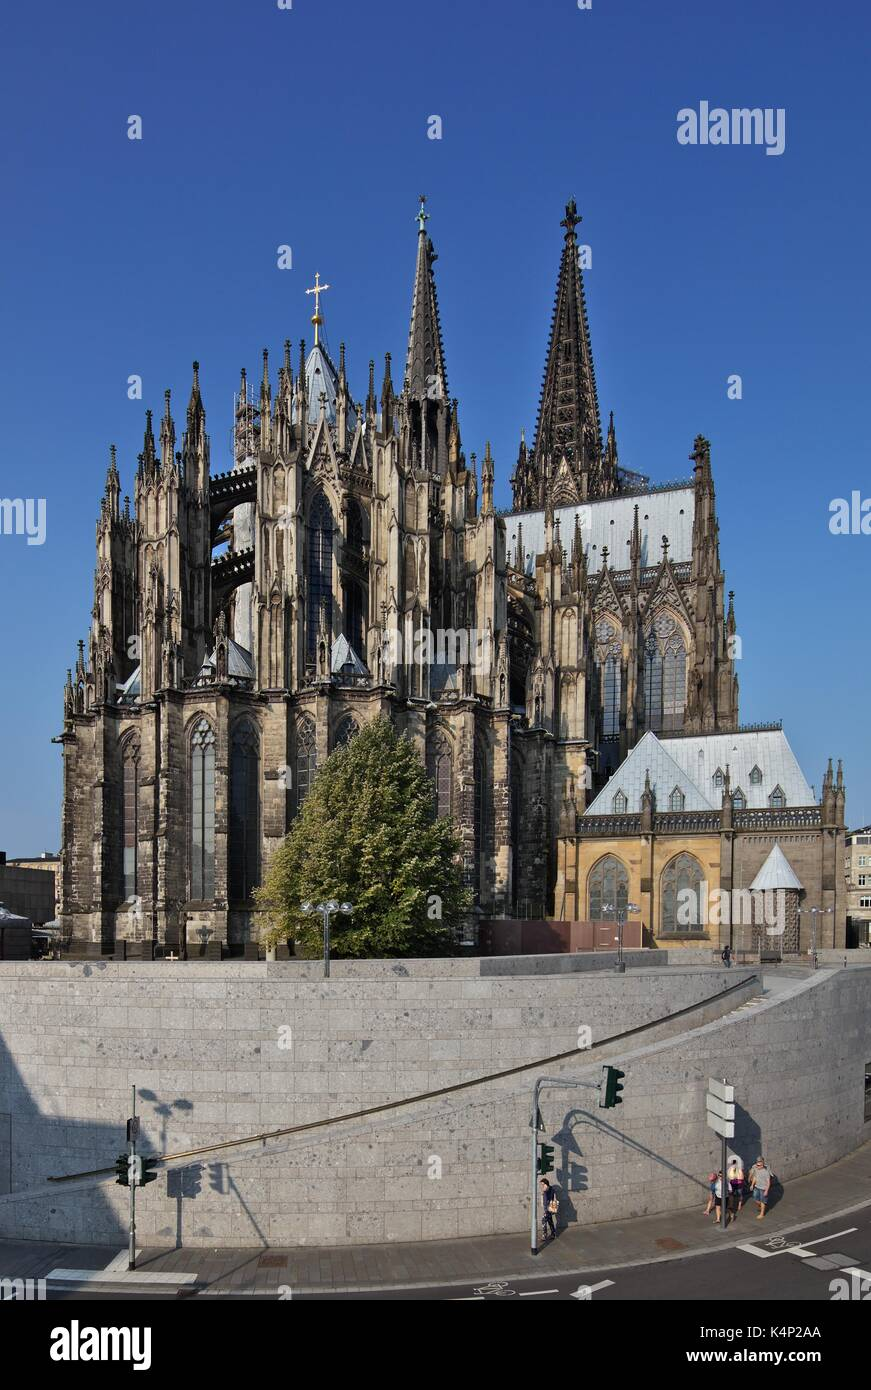 cologne-cathedral-K4P2AA.jpg